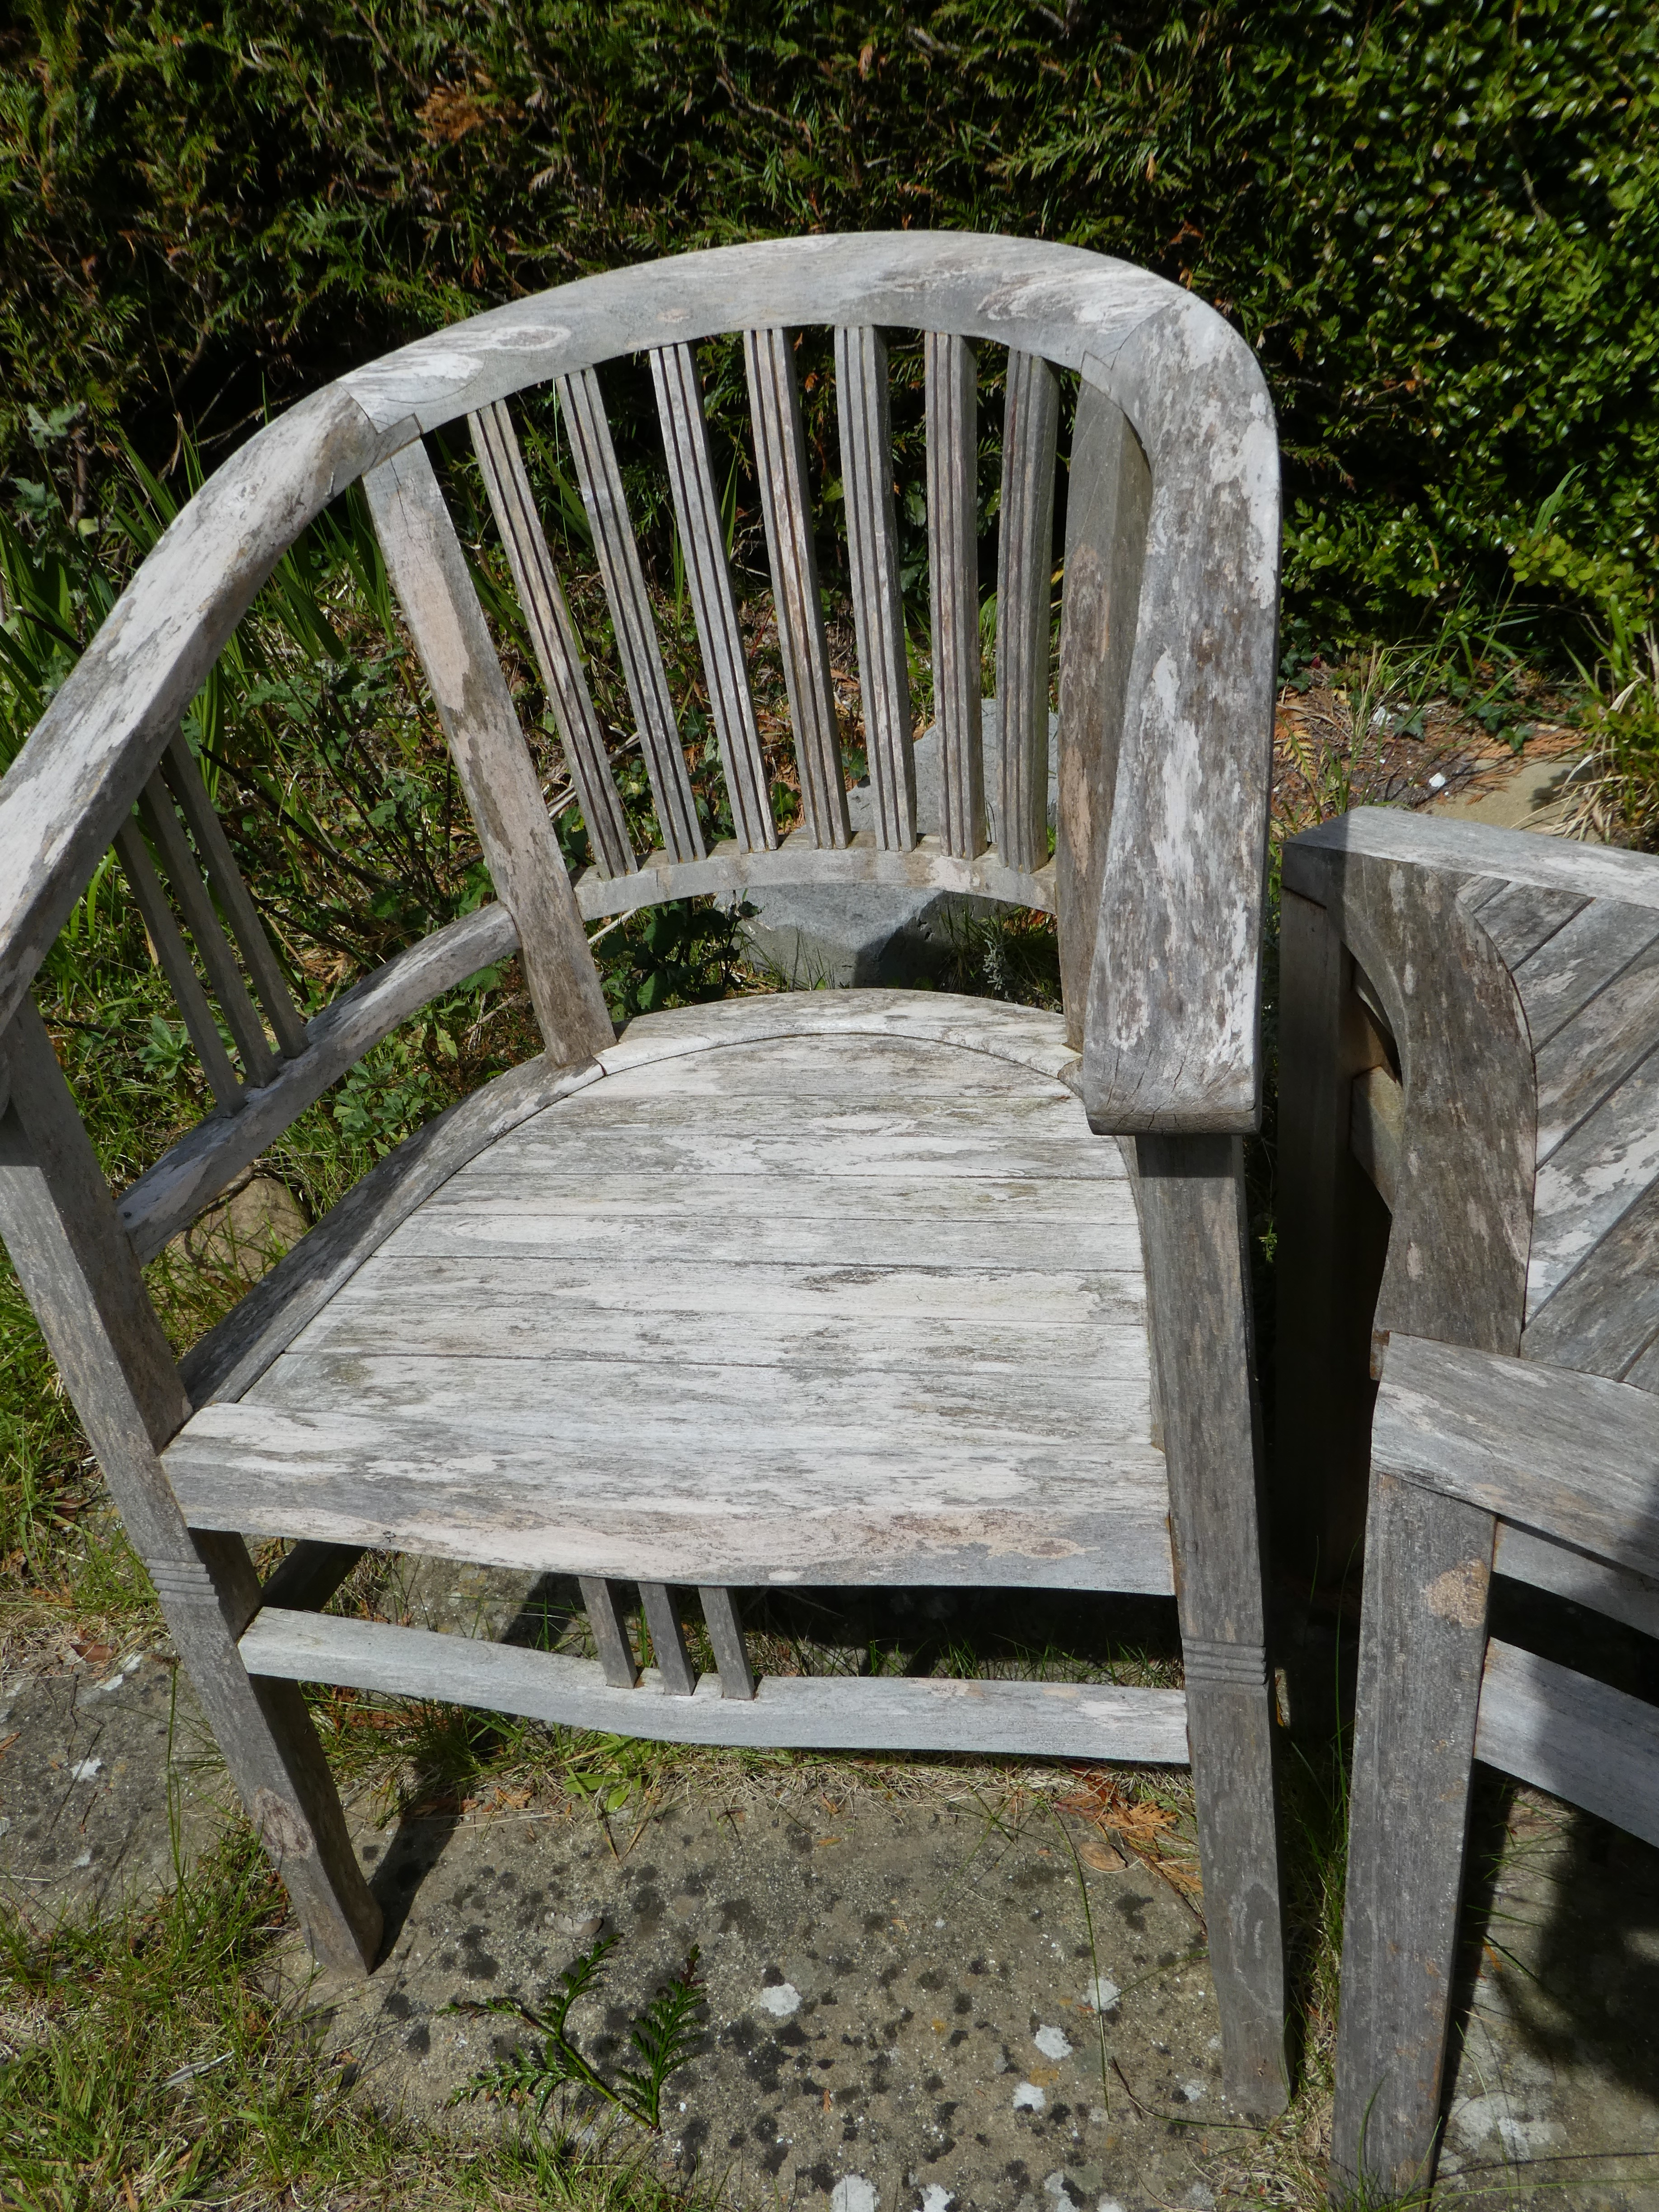 Gentil Garden Chairs Damaged By Wasps (Left Teak Chair And Right Unknown Wood